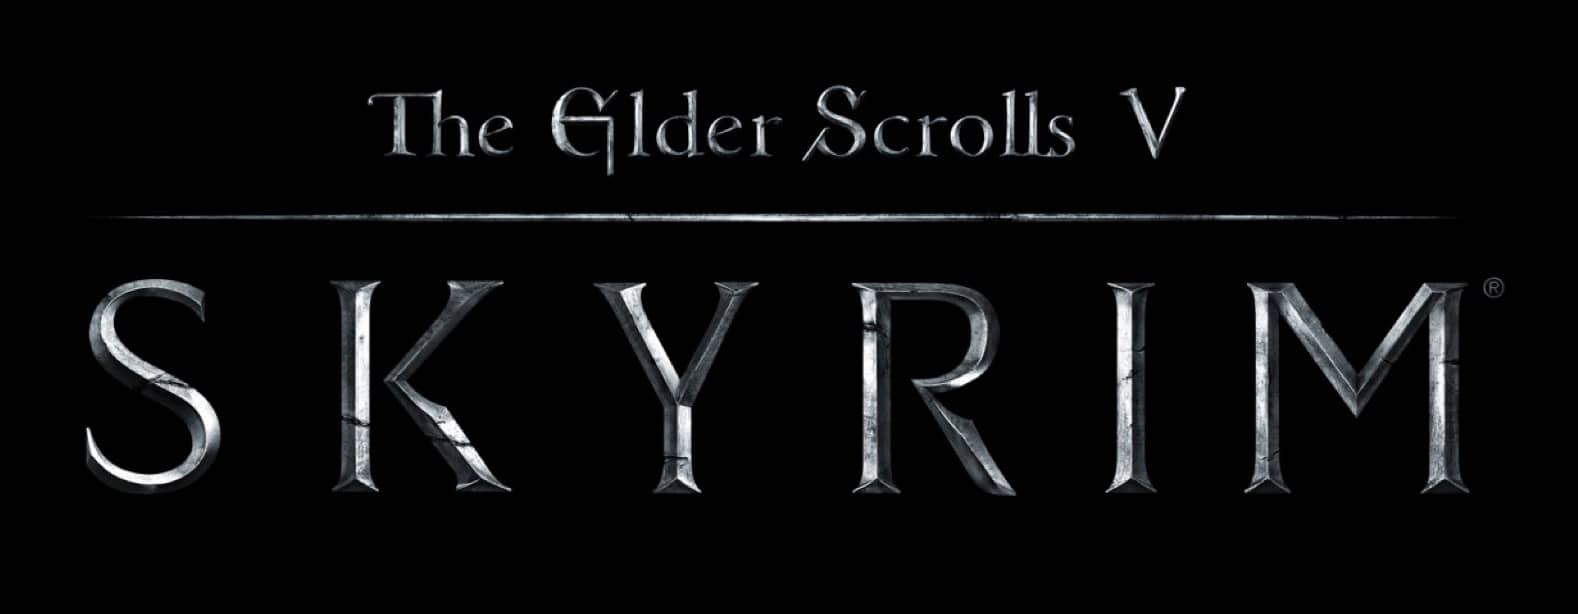 Skyrim Cheats PC, PS3 & Skyrim Console Commands Items Codes - Good